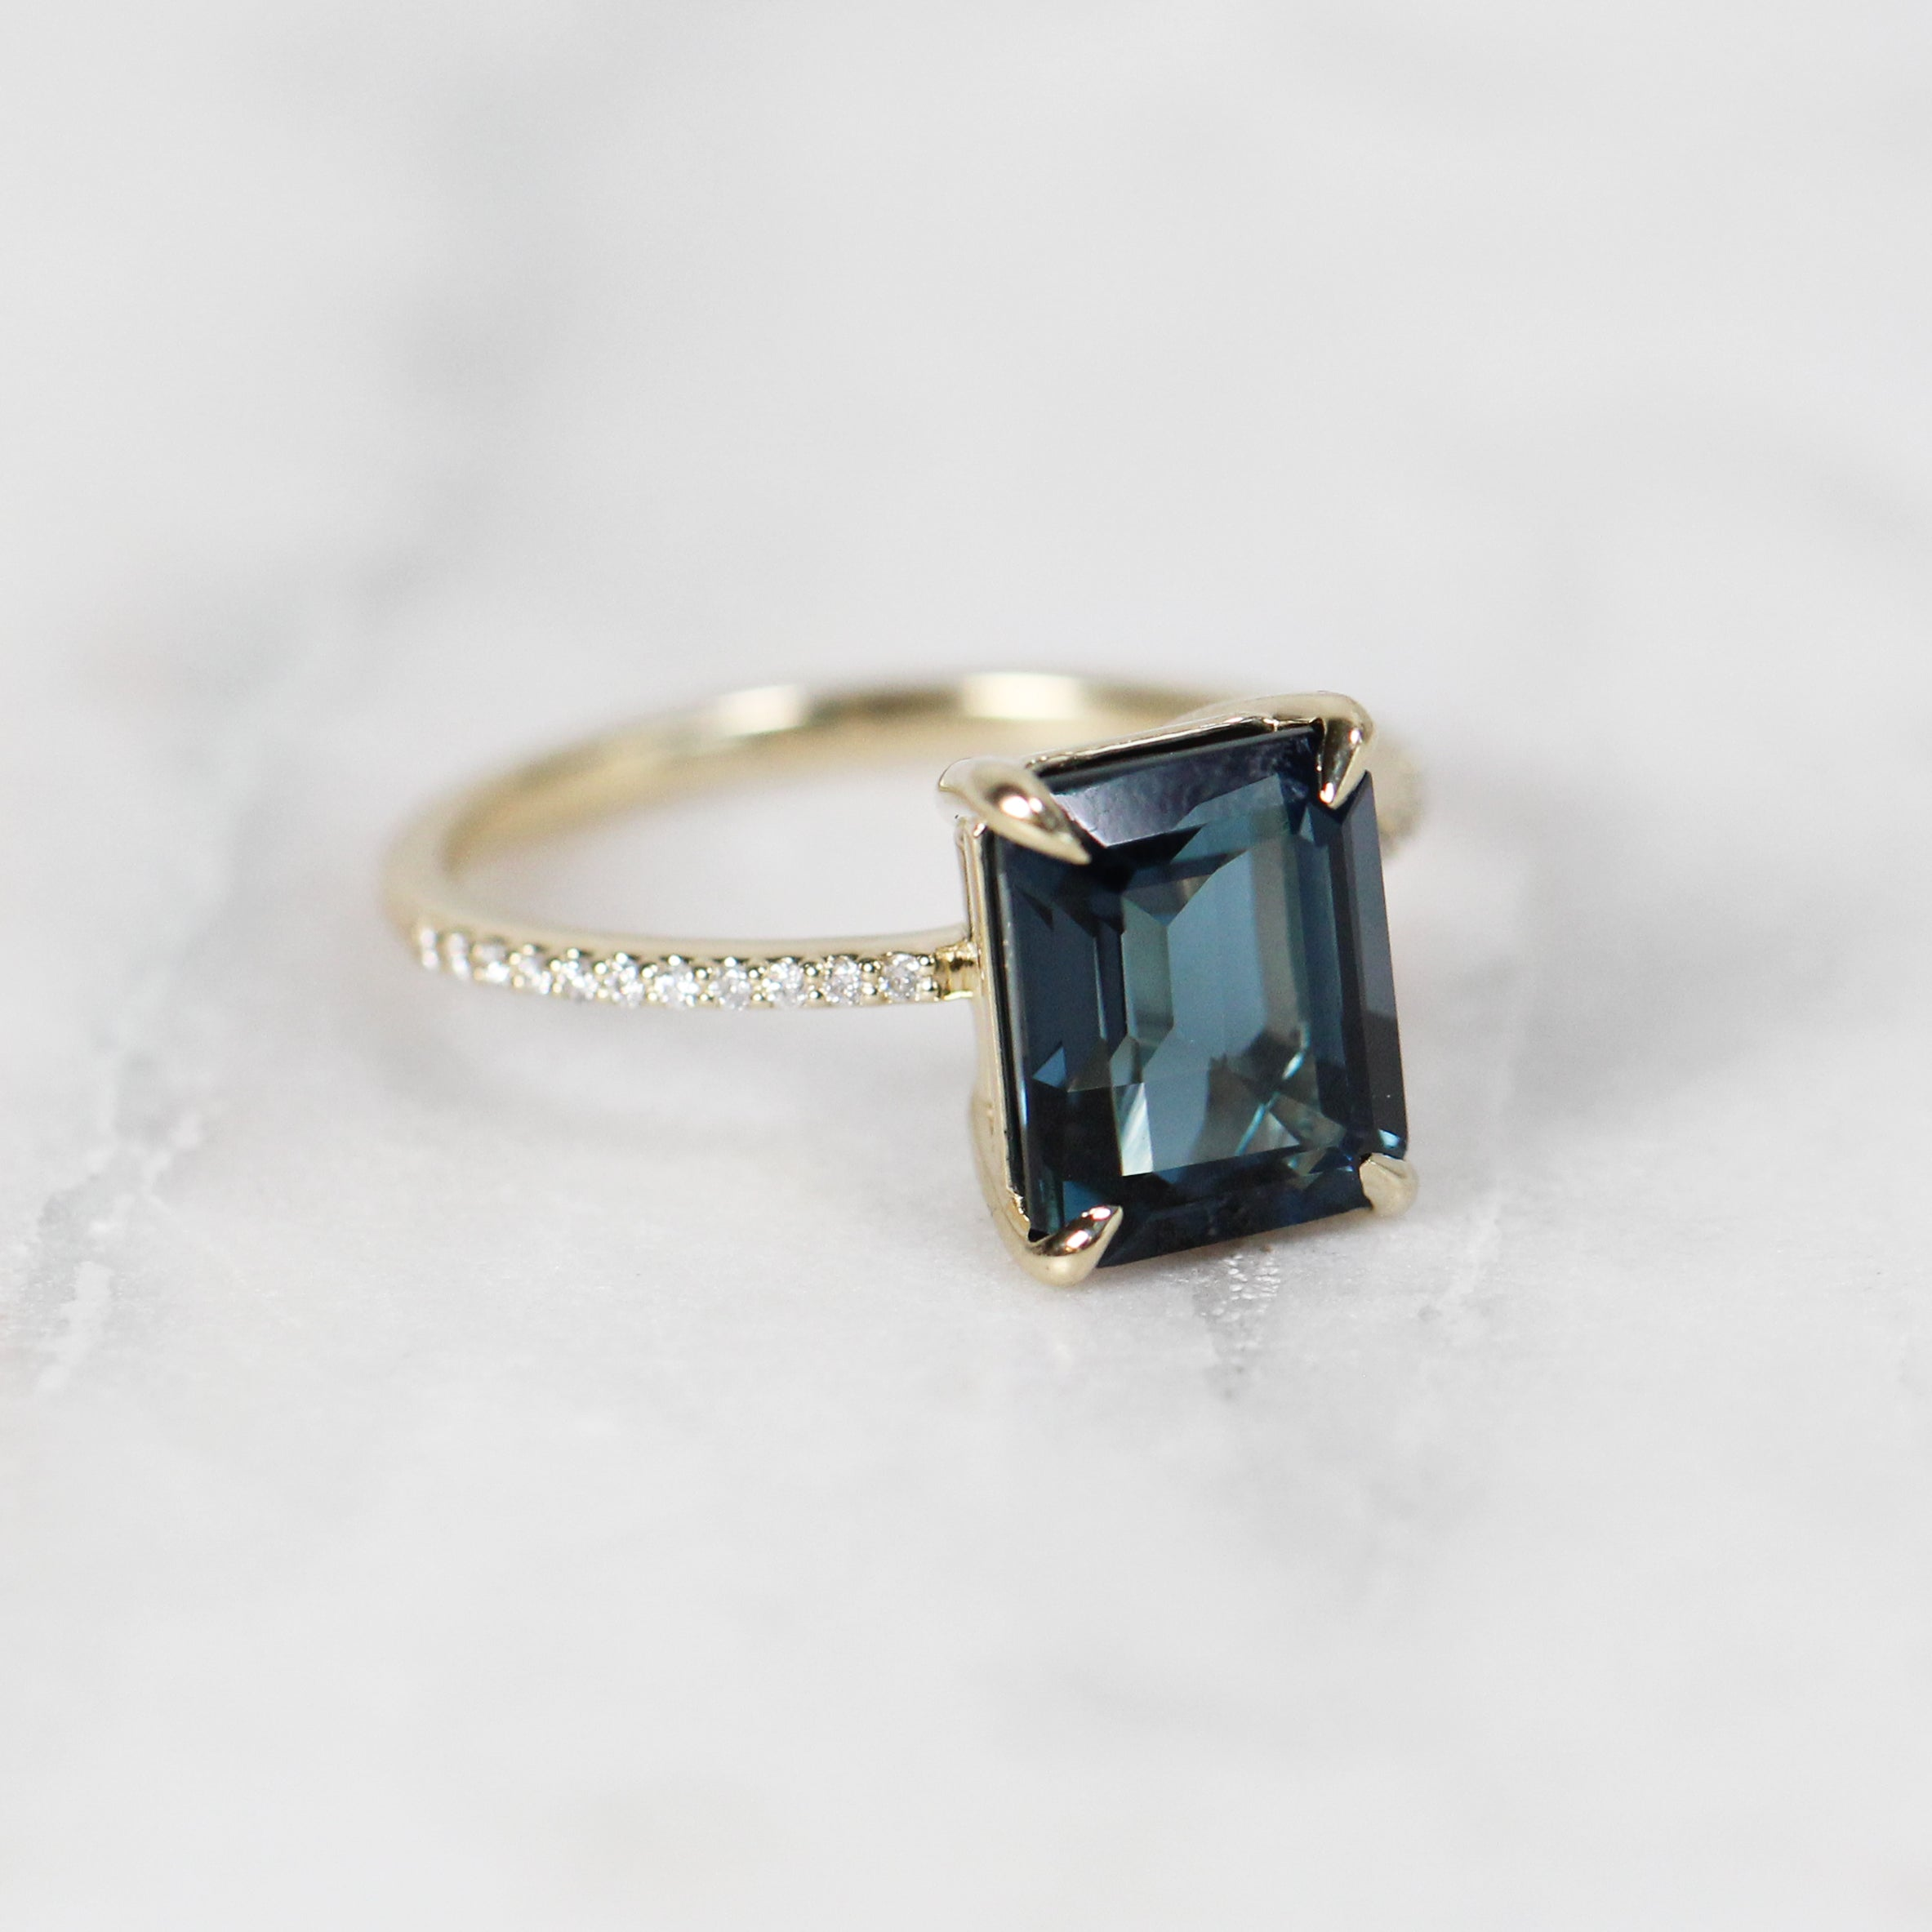 Mia Ring with 3.75ct London Blue Topaz Emerald Cut - Custom Made to Order - Salt & Pepper Celestial Diamond Engagement Rings and Wedding Bands  by Midwinter Co.